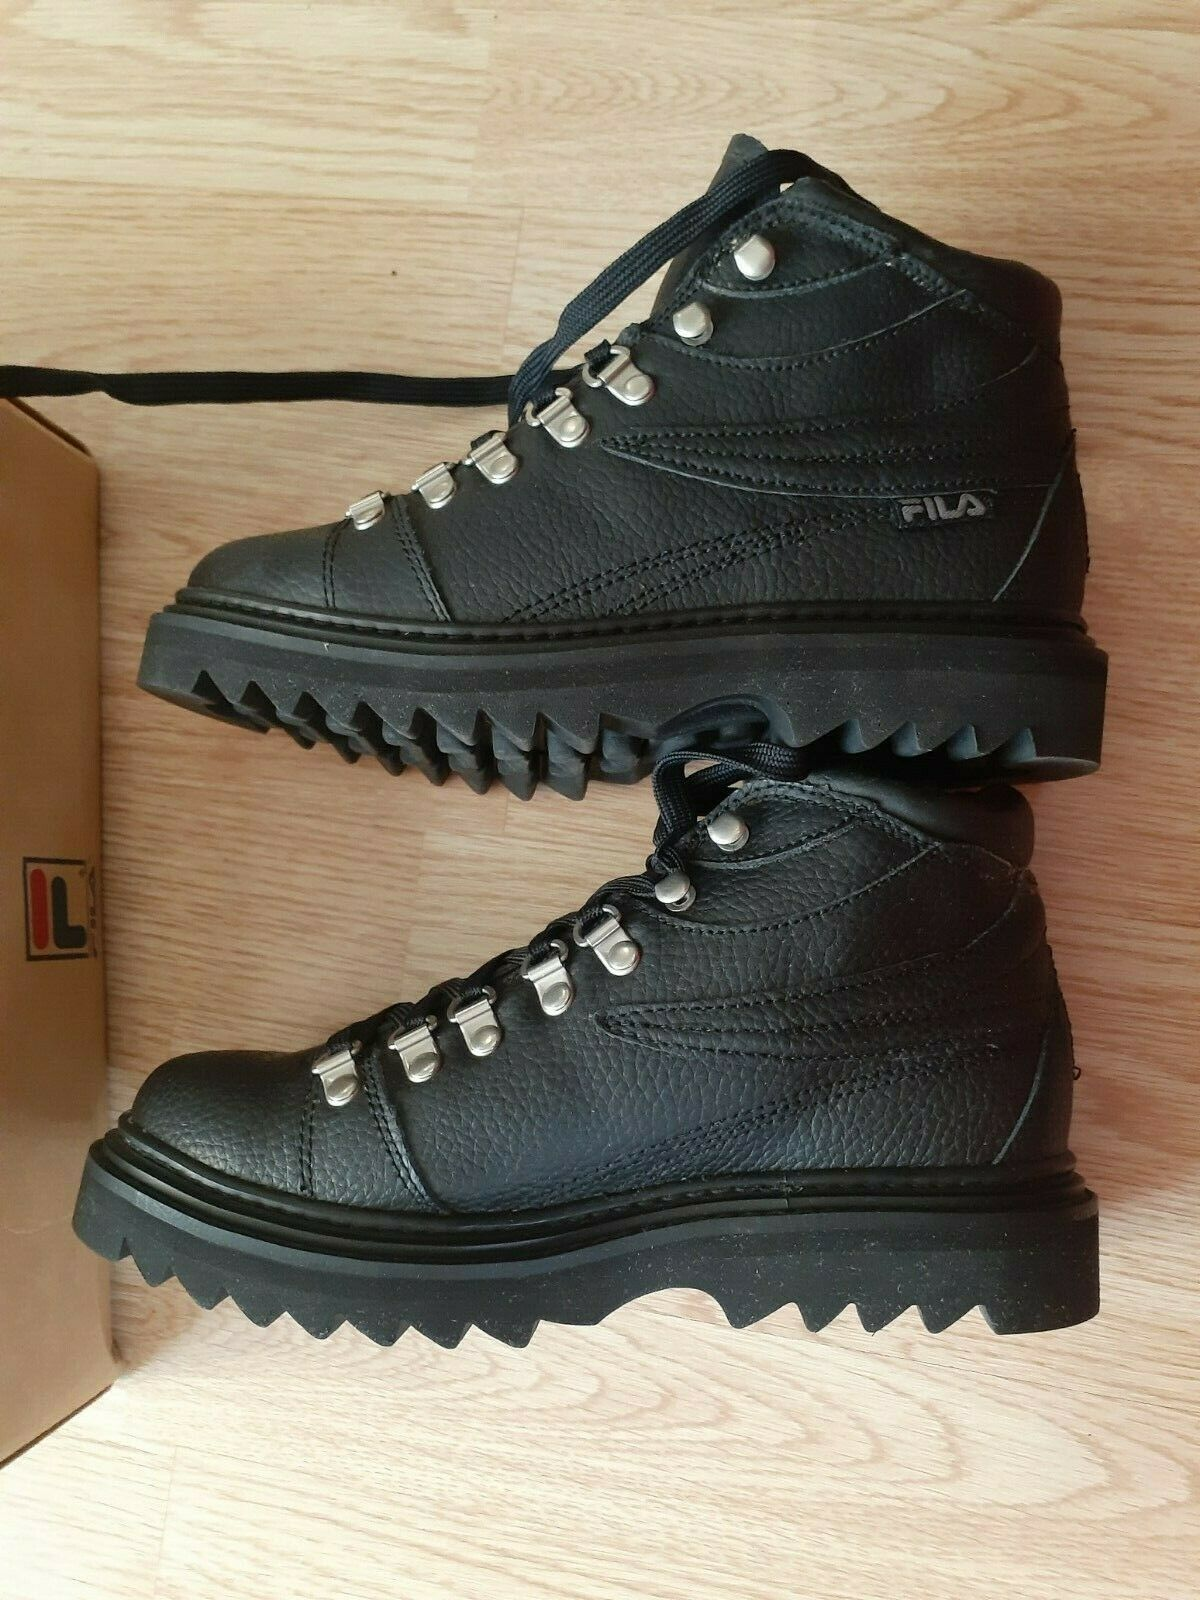 Fila B's Ripsau Mid Pebbled Leather Youth Boots Black US 5 New In Box - $37.95